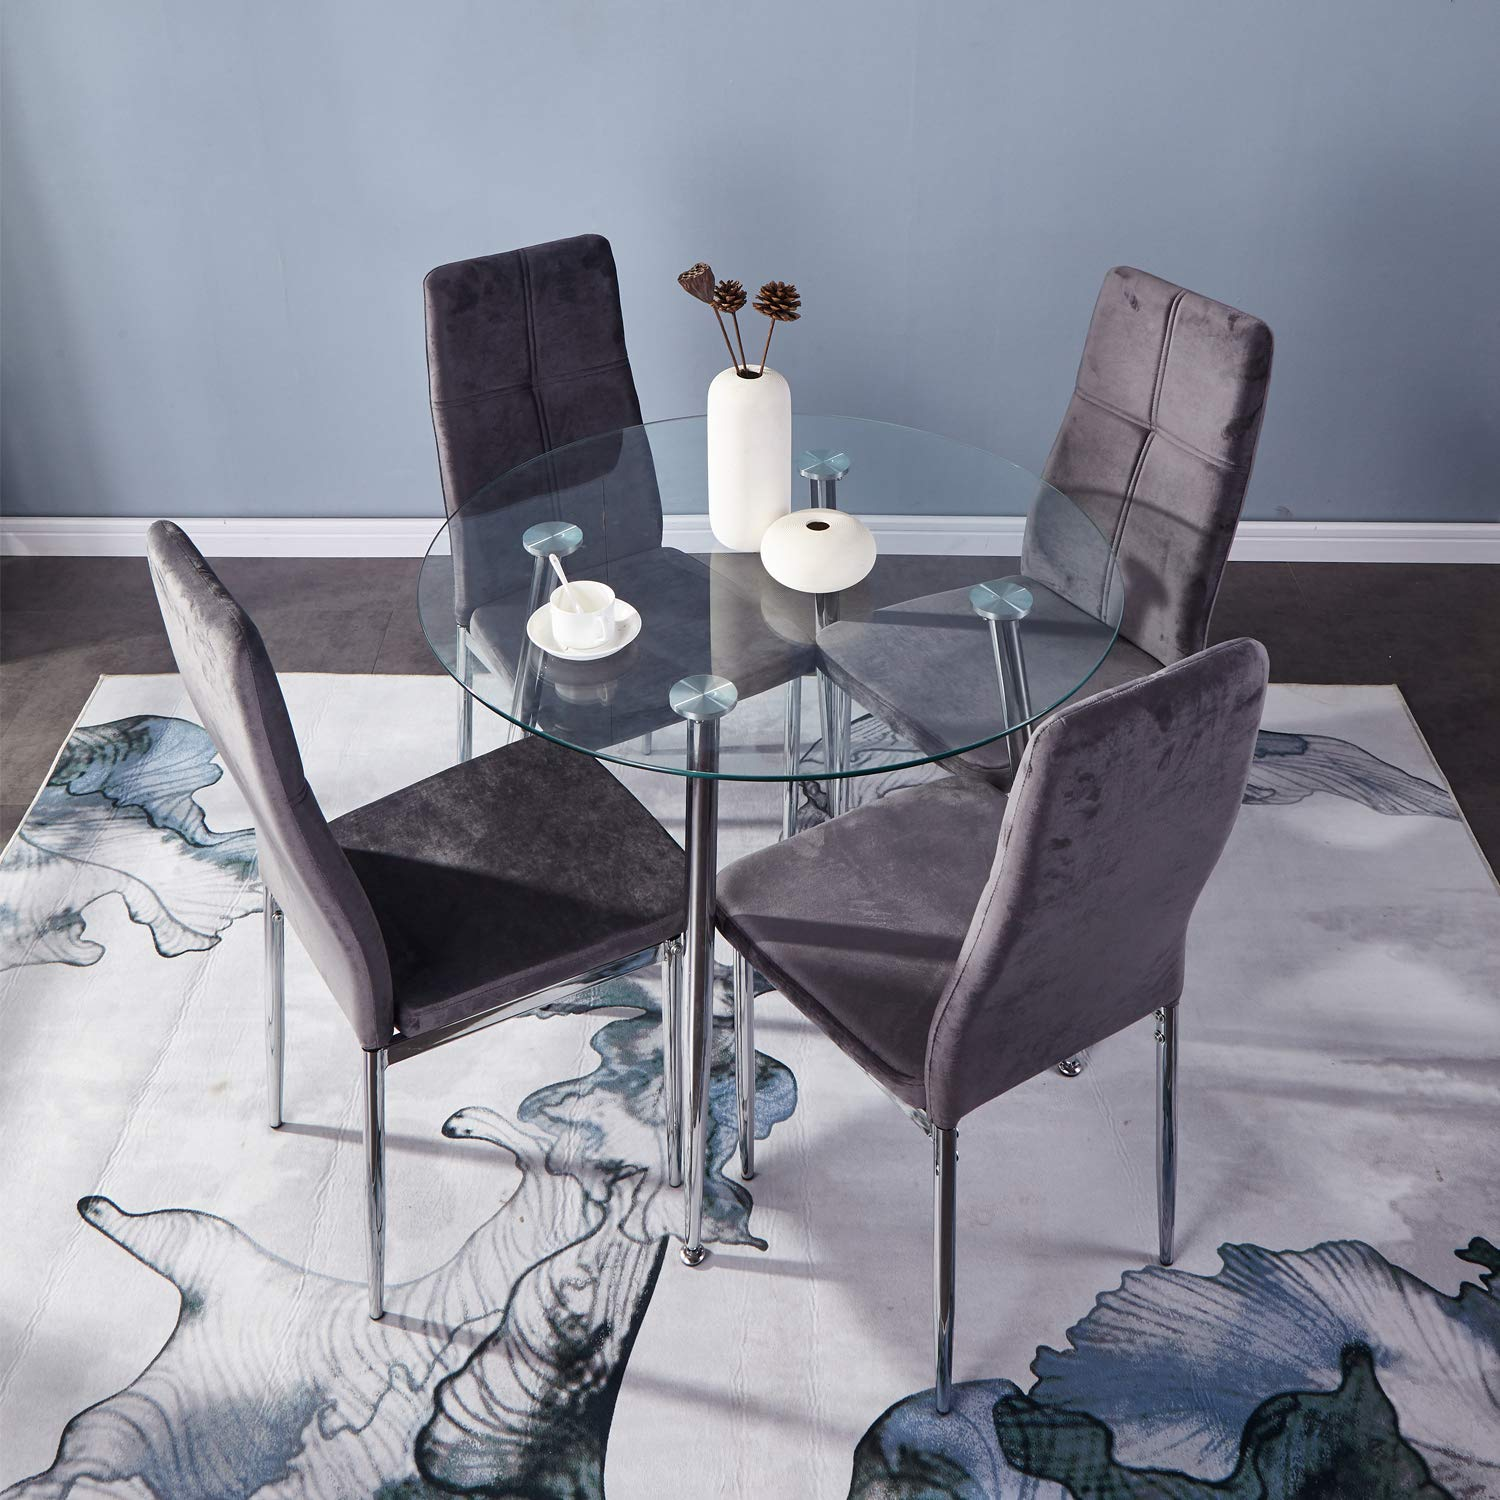 Small Dining Table Set For 4, Goldfan Small Round Dining Table And Chairs Set Of 4 Modern Glass Kitchen Dining Table Set With Chrome Legs For Living Room Office Furniture Buy Online In Trinidad And Tobago At Desertcart